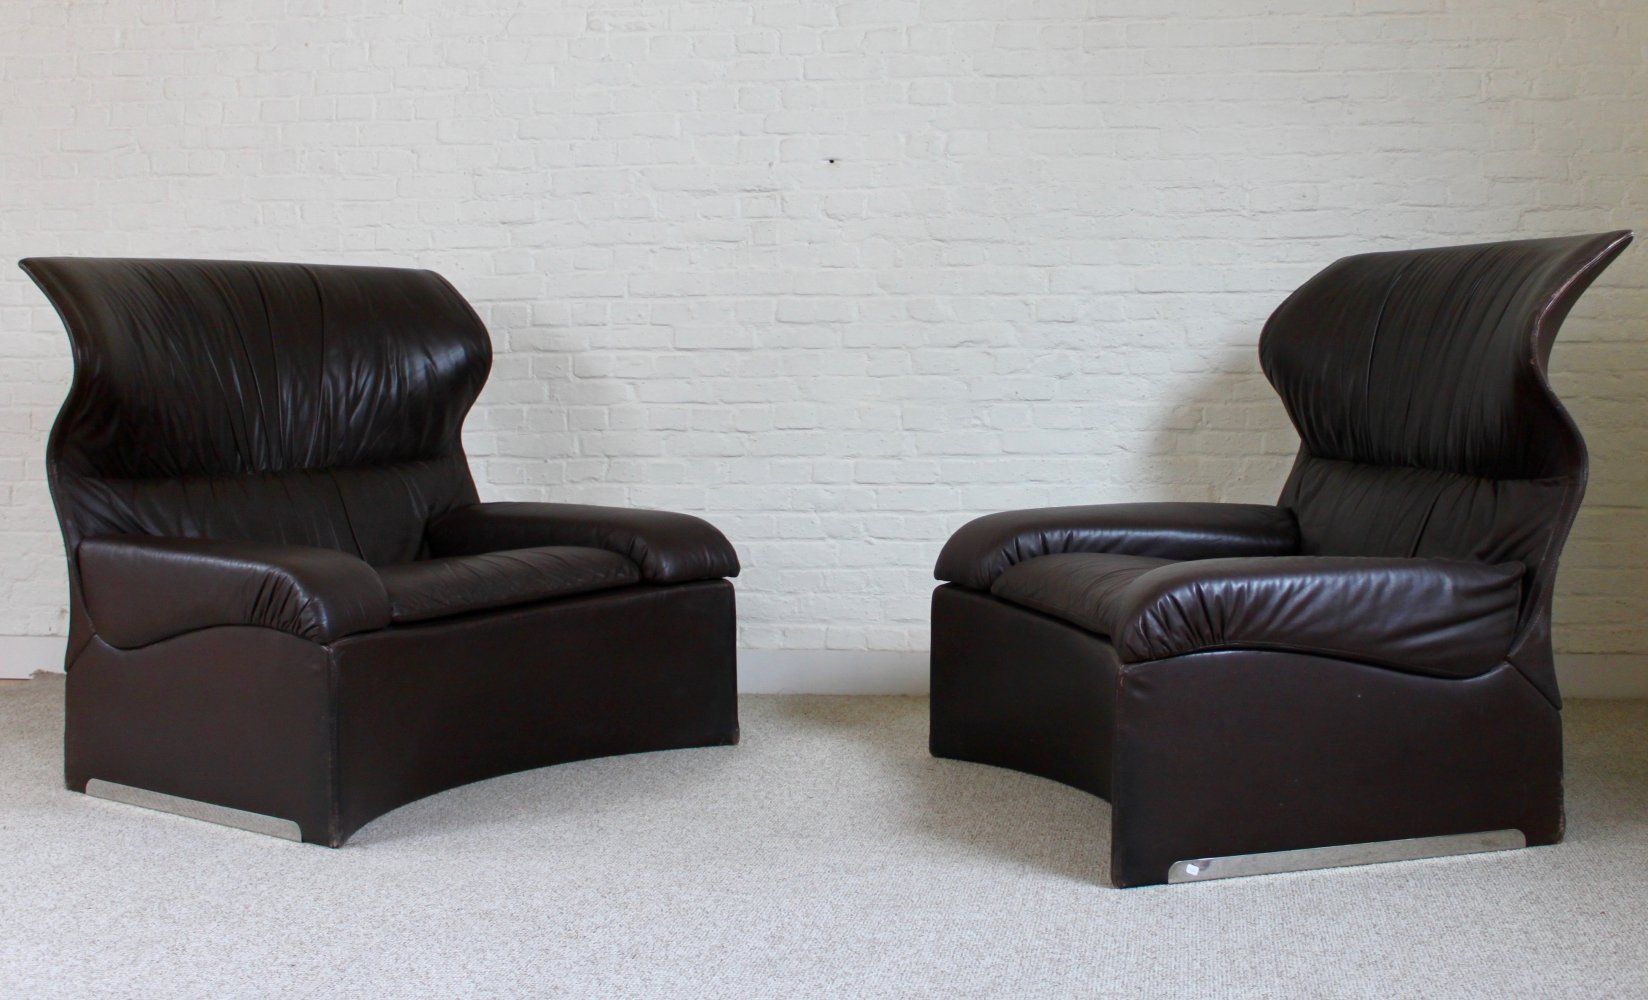 Set of 2 Vela Alta lounge chairs by Giovanni Offredi for Saporiti